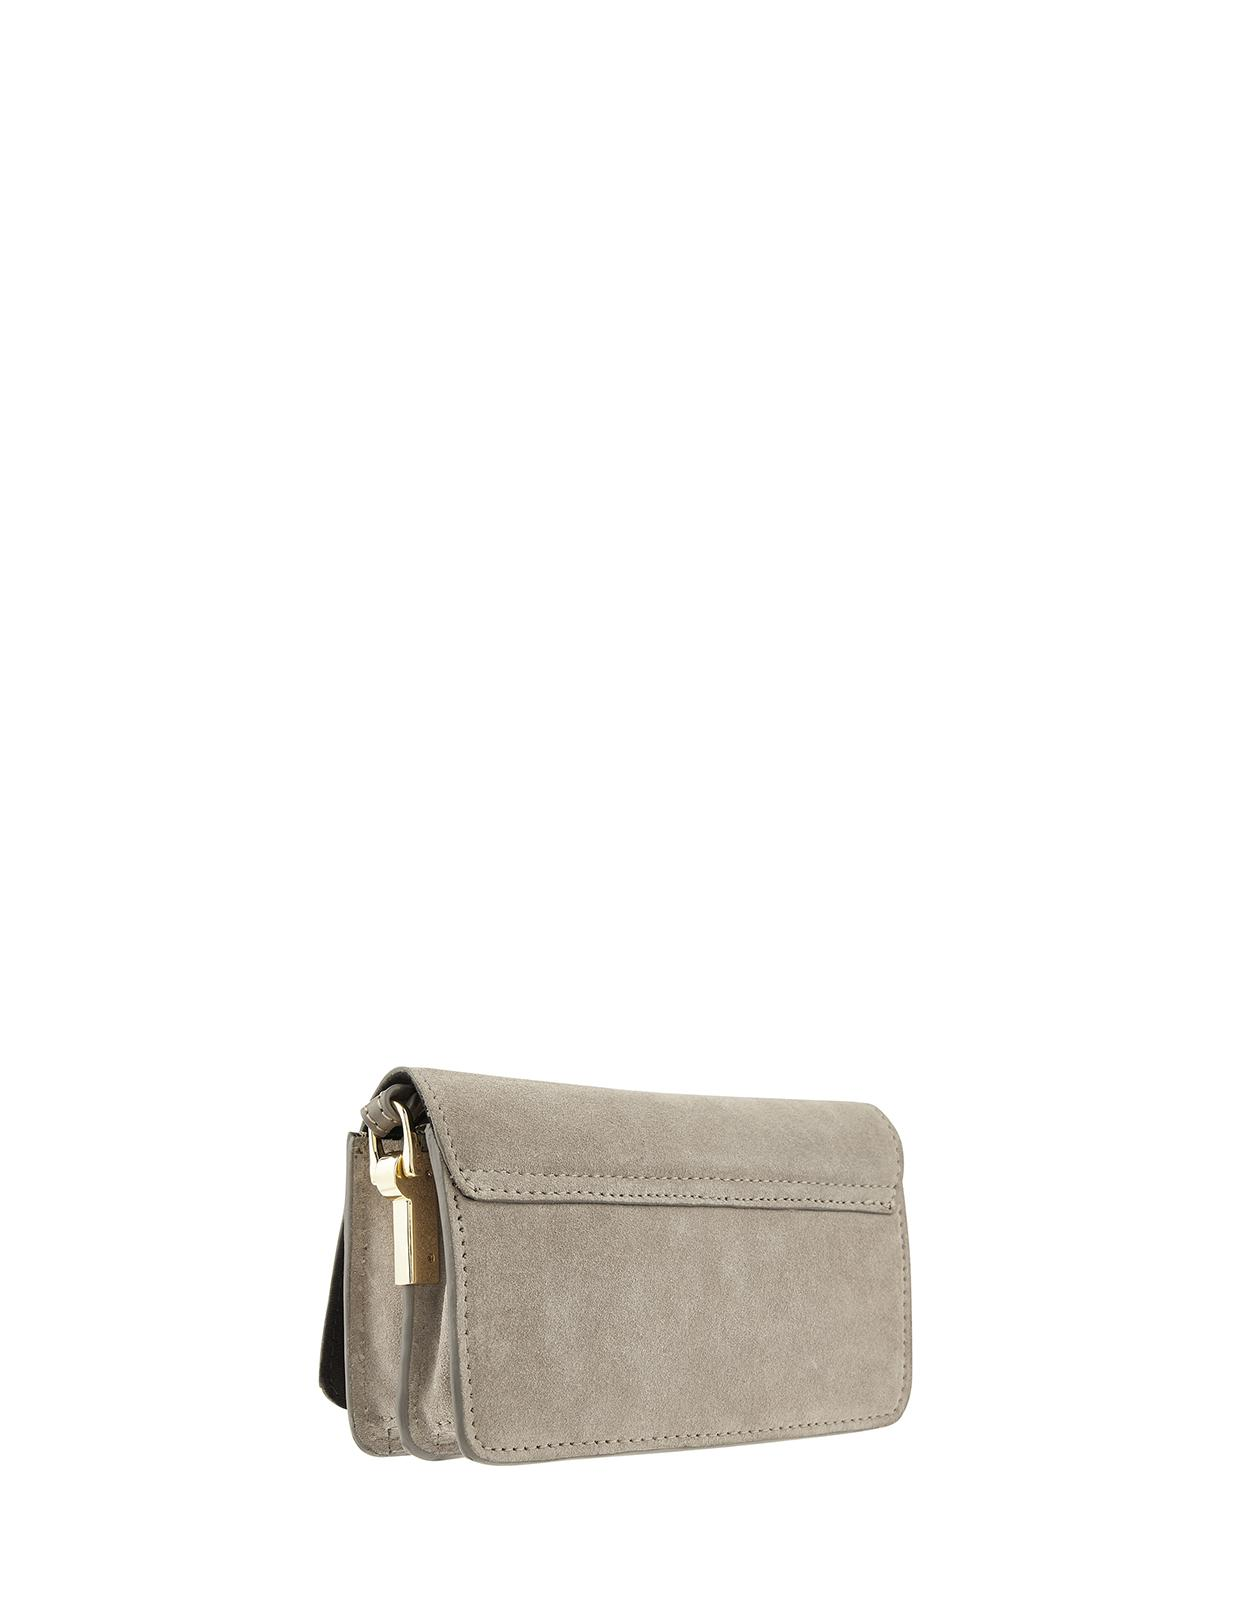 Monsoon Suede Mabel Mini Leaf Leather Cross Body Bag in Grey (Grey)